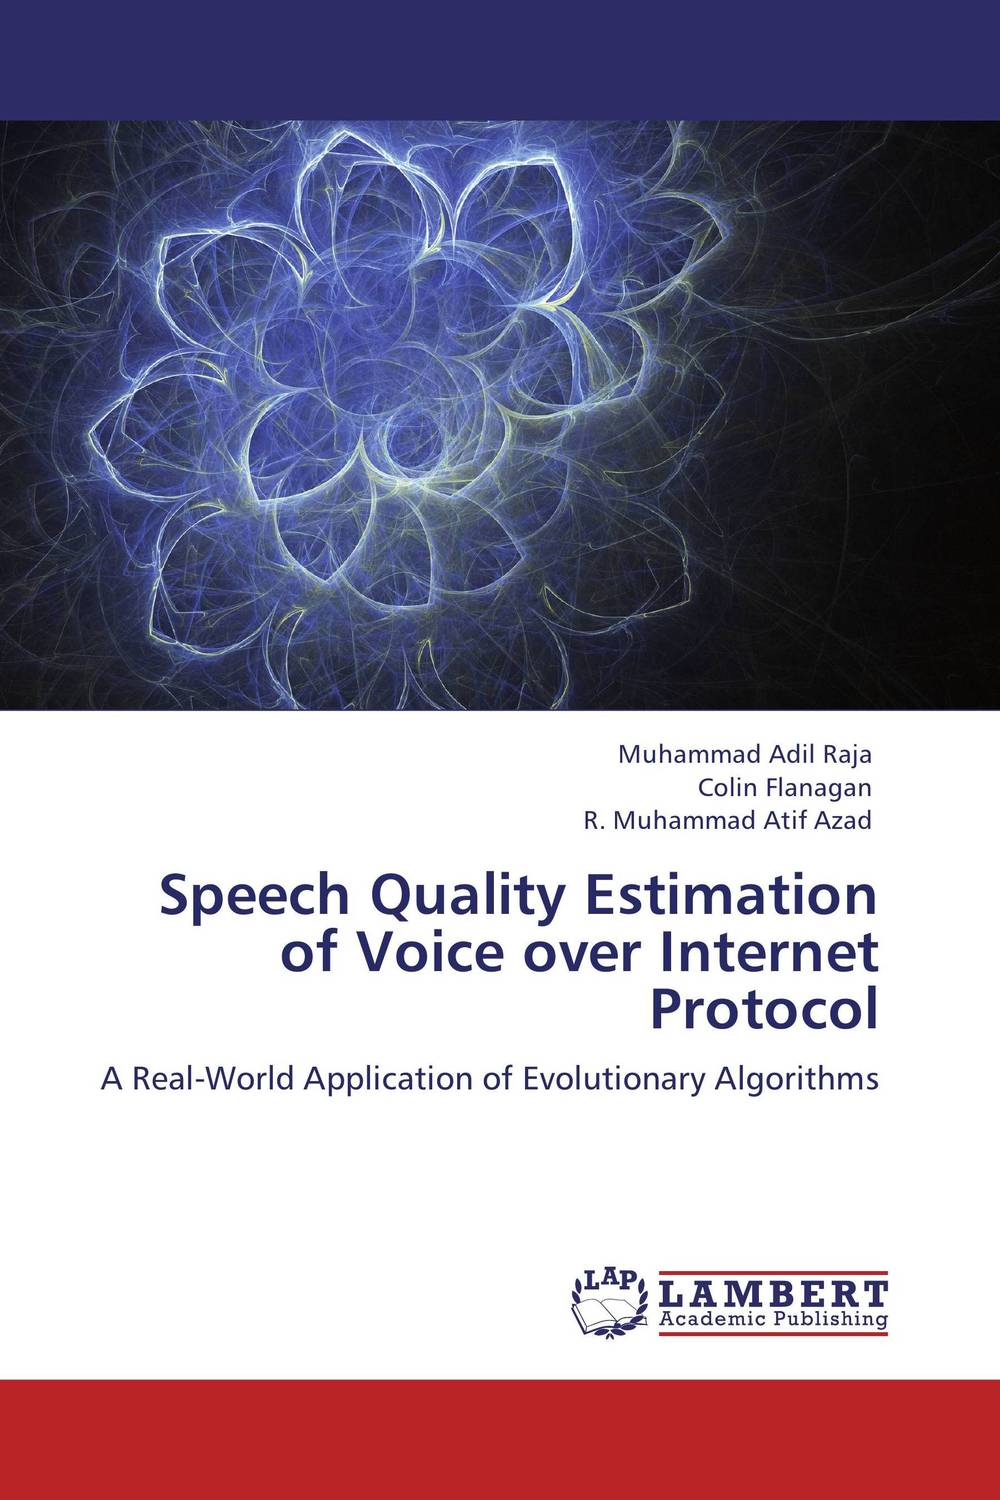 Speech Quality Estimation of Voice over Internet Protocol speech quality estimation of voice over internet protocol page 2